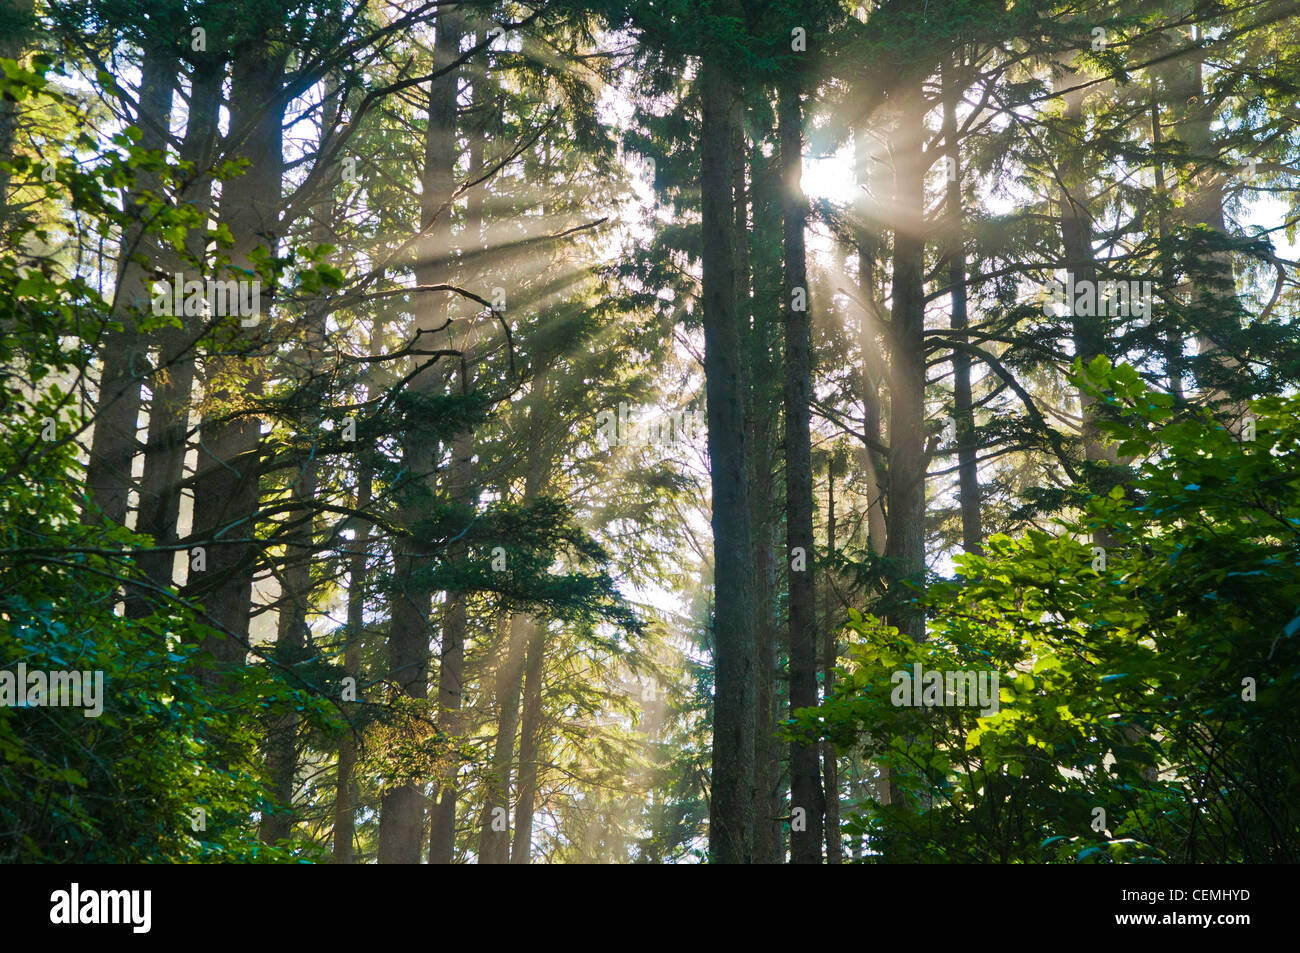 Sunbeams shine through trees in forest, Cape Lookout State Park, Oregon - Stock Image